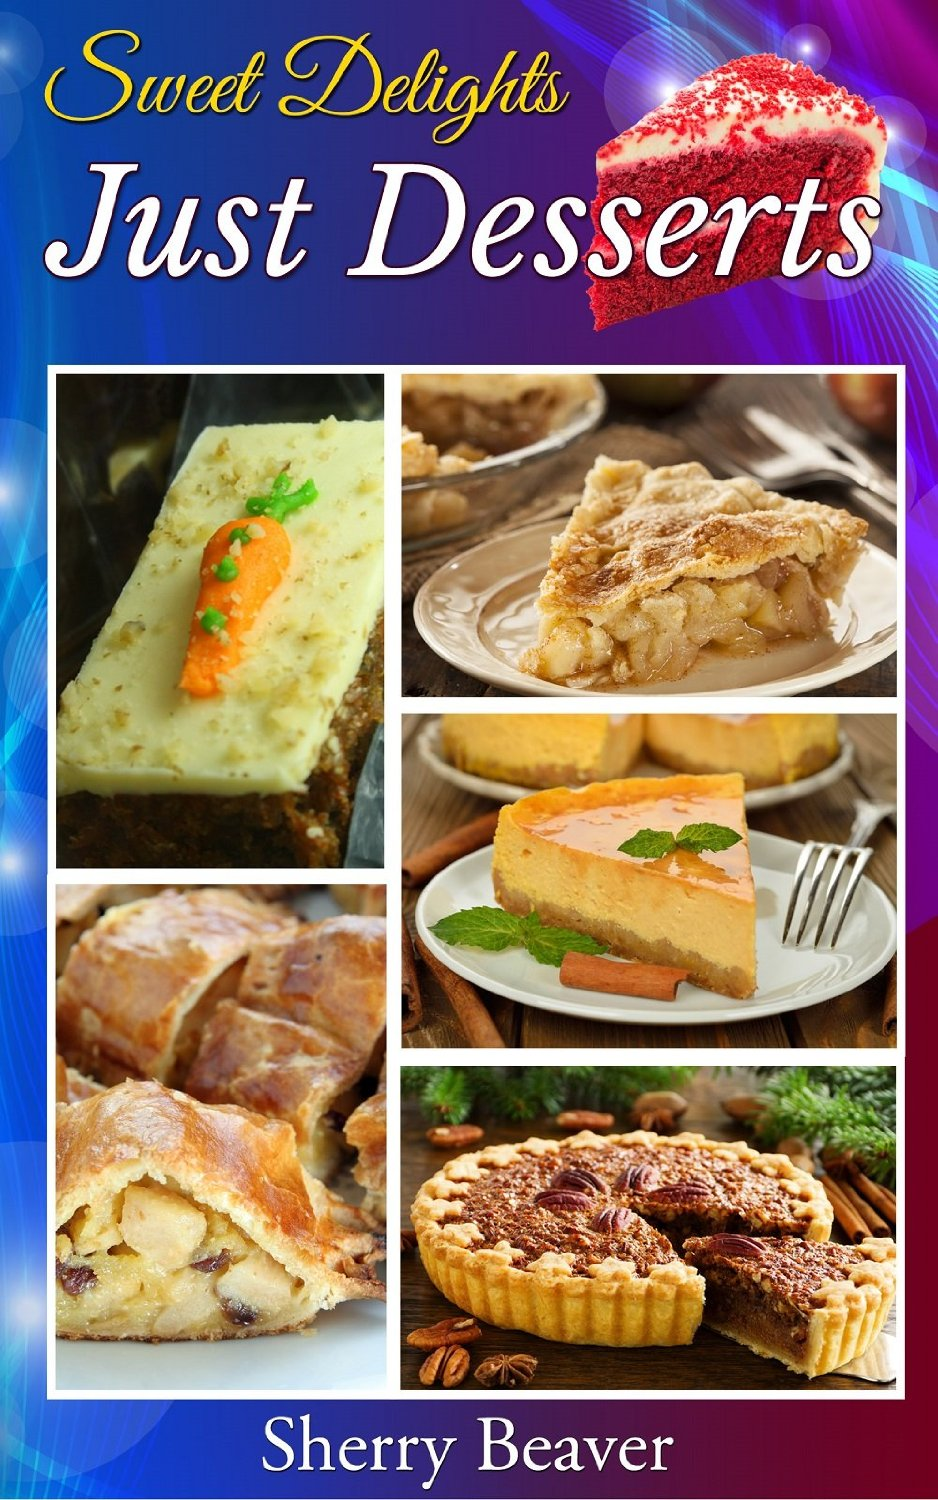 Sweet Delights Just Desserts: Recipe Book free download